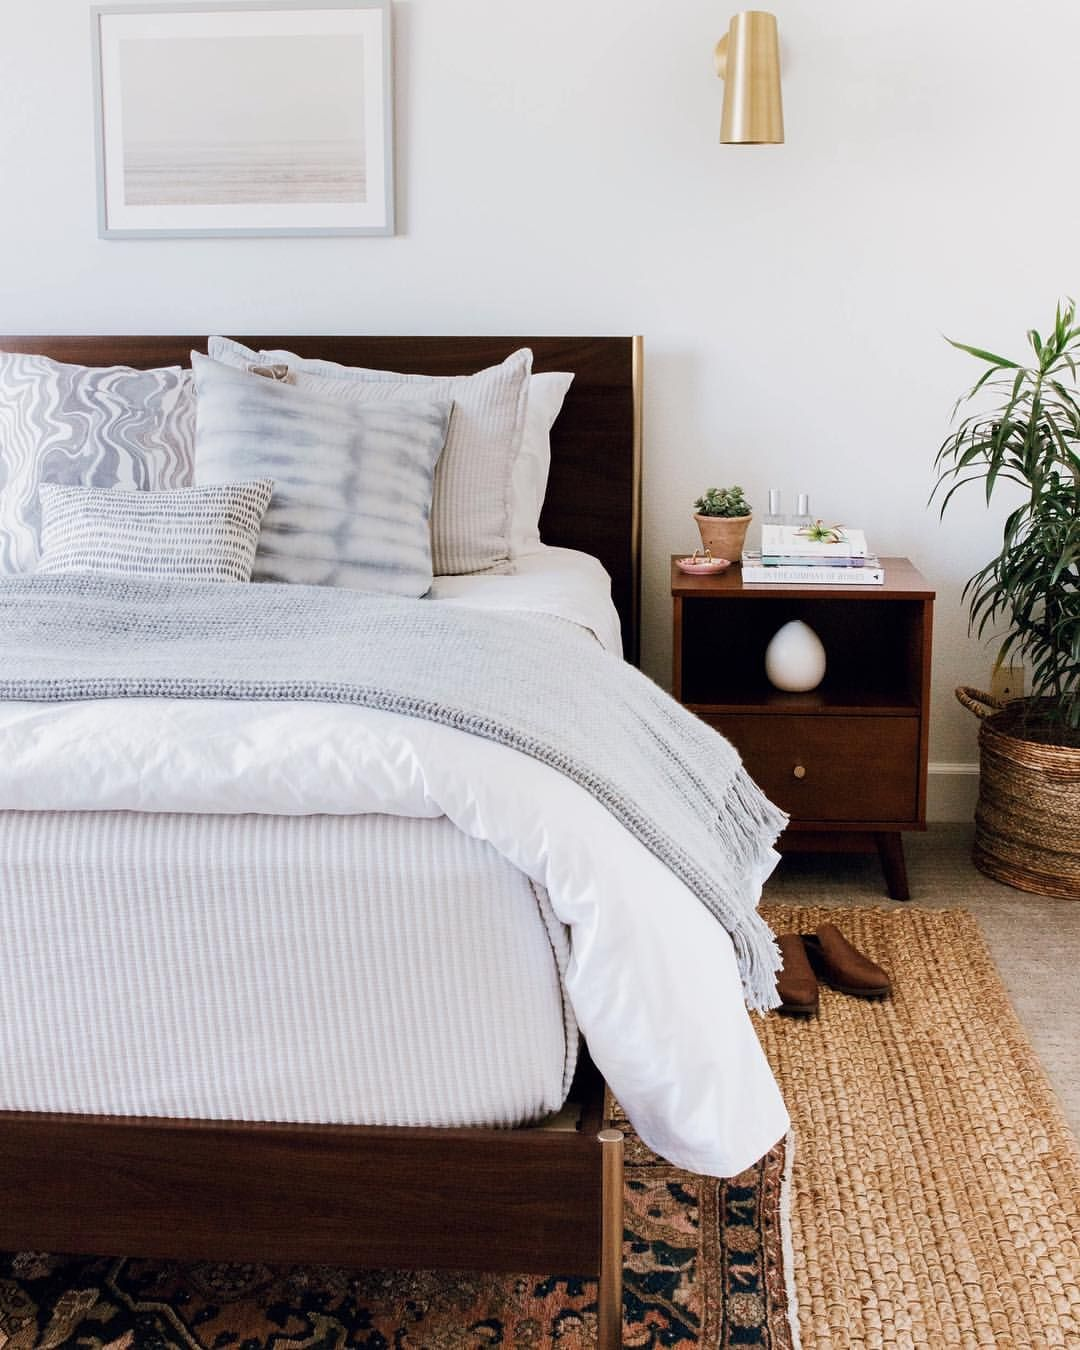 Spent most of my day dragging myself around the house getting things done at also best images in home decor future rh pinterest